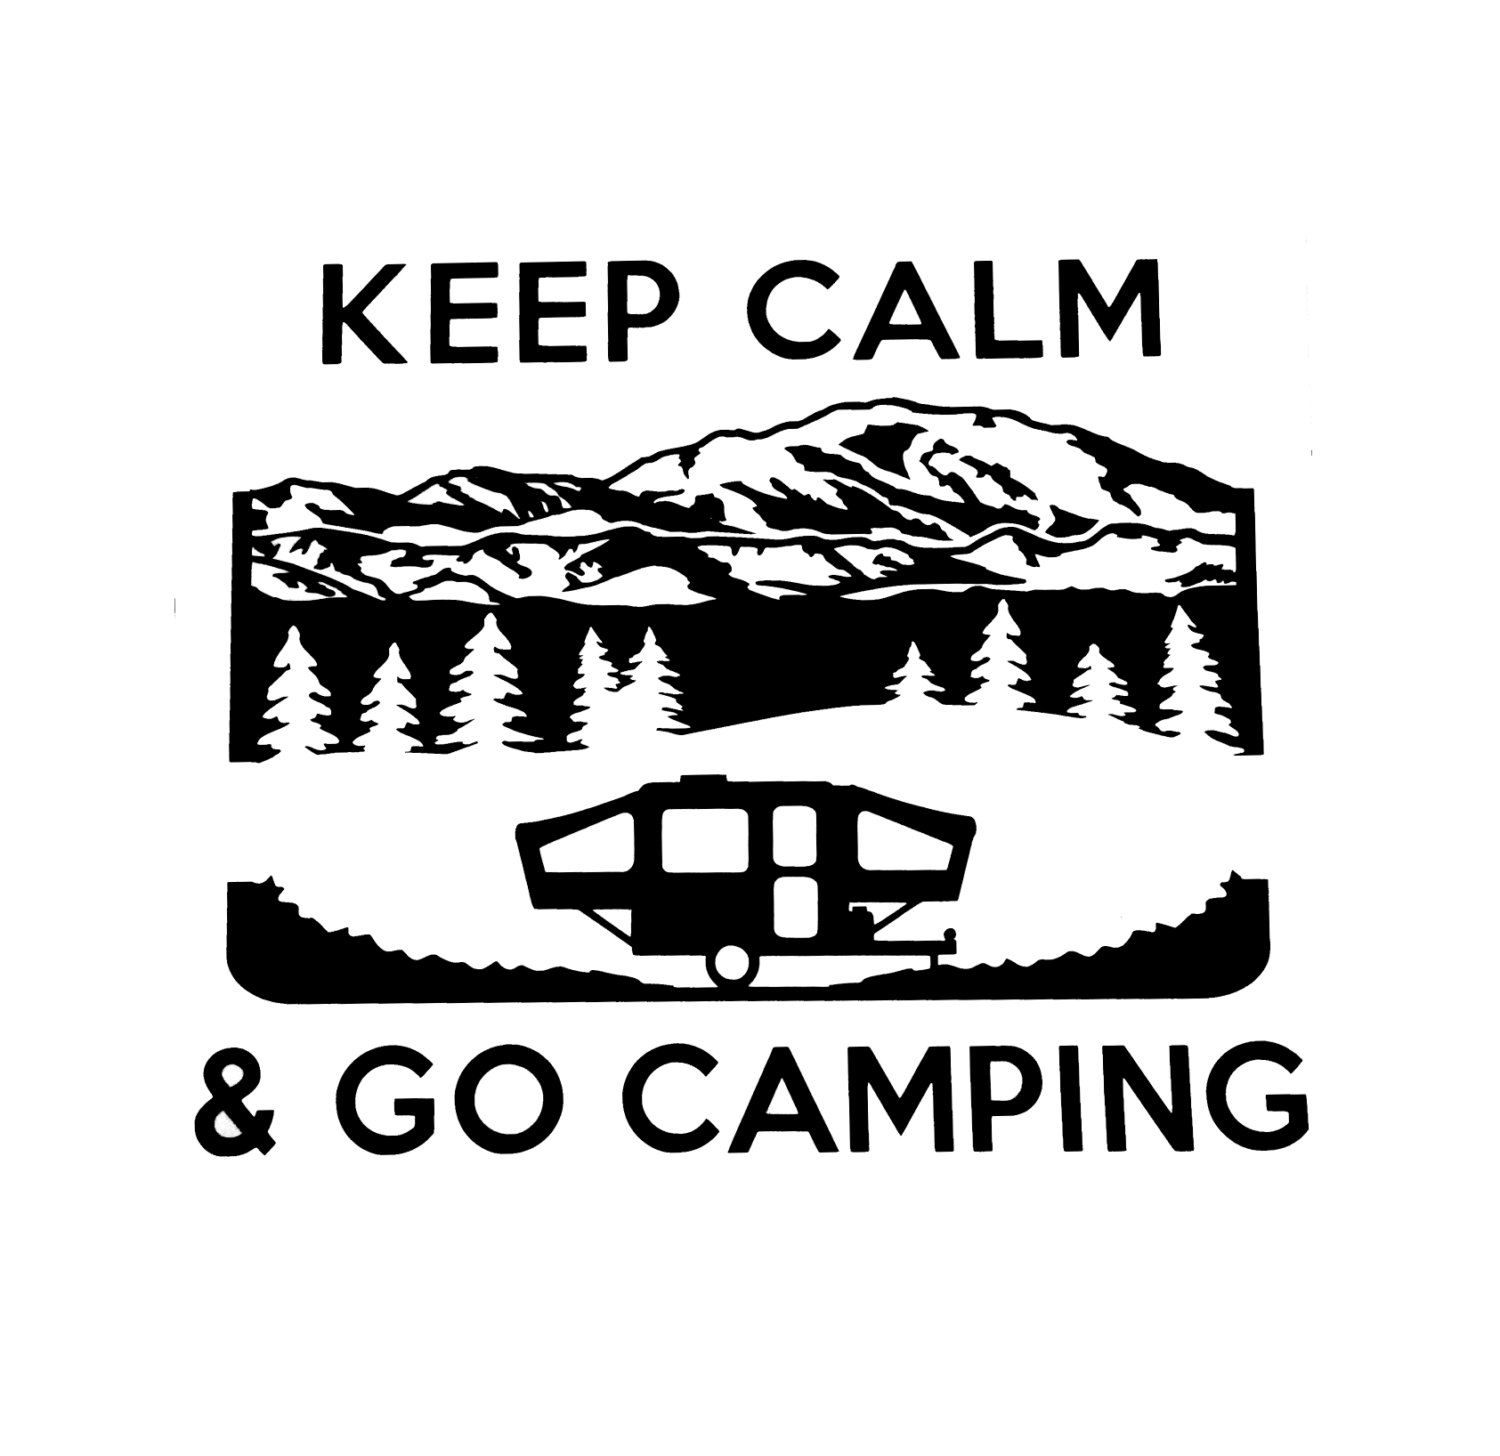 Stay Or Keep Calm Camping With Popup Trailer Rv Camper